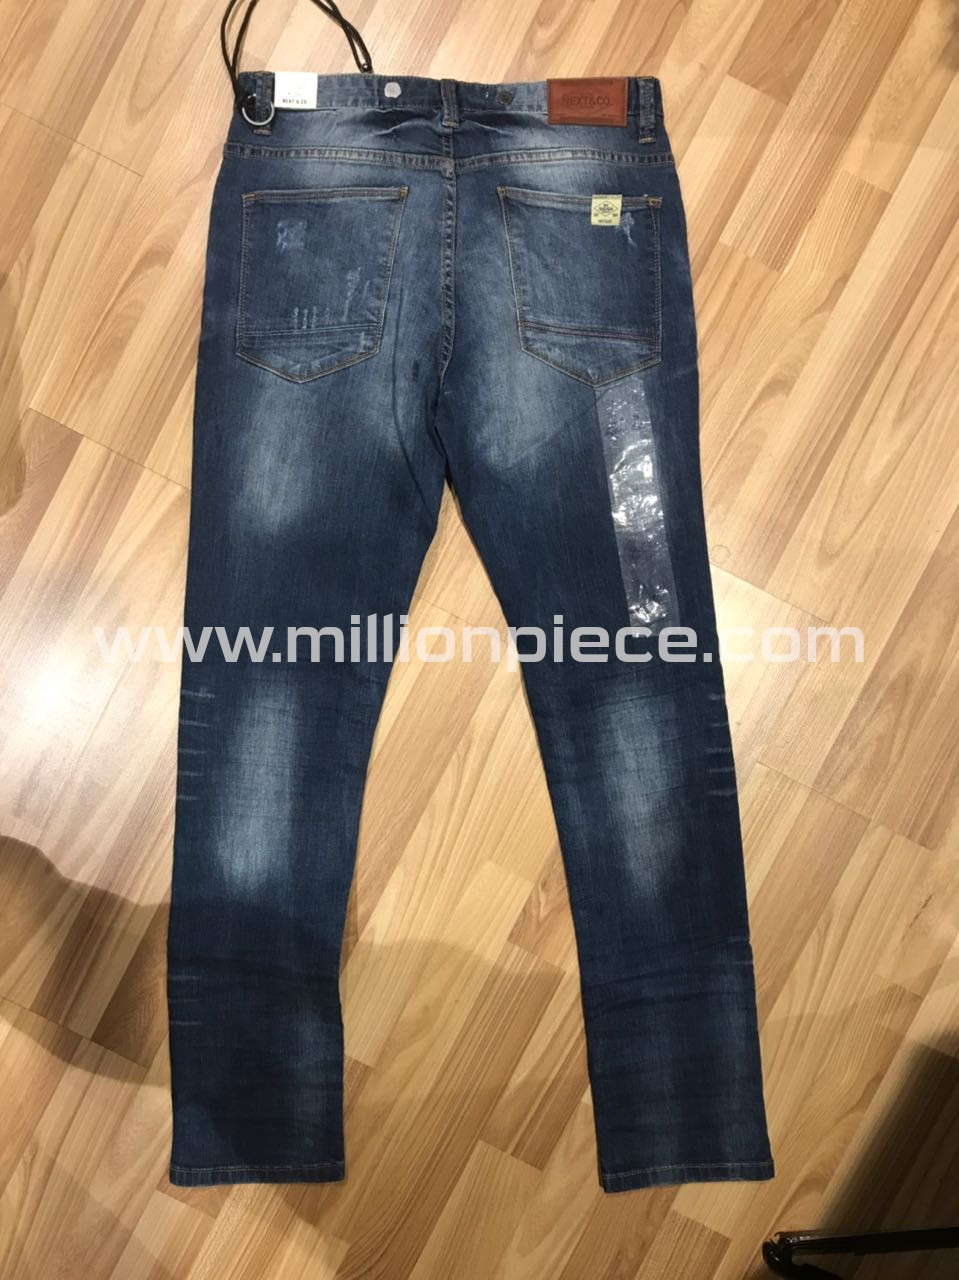 branded jeans stocklots 11 1 - BRAND OFFER